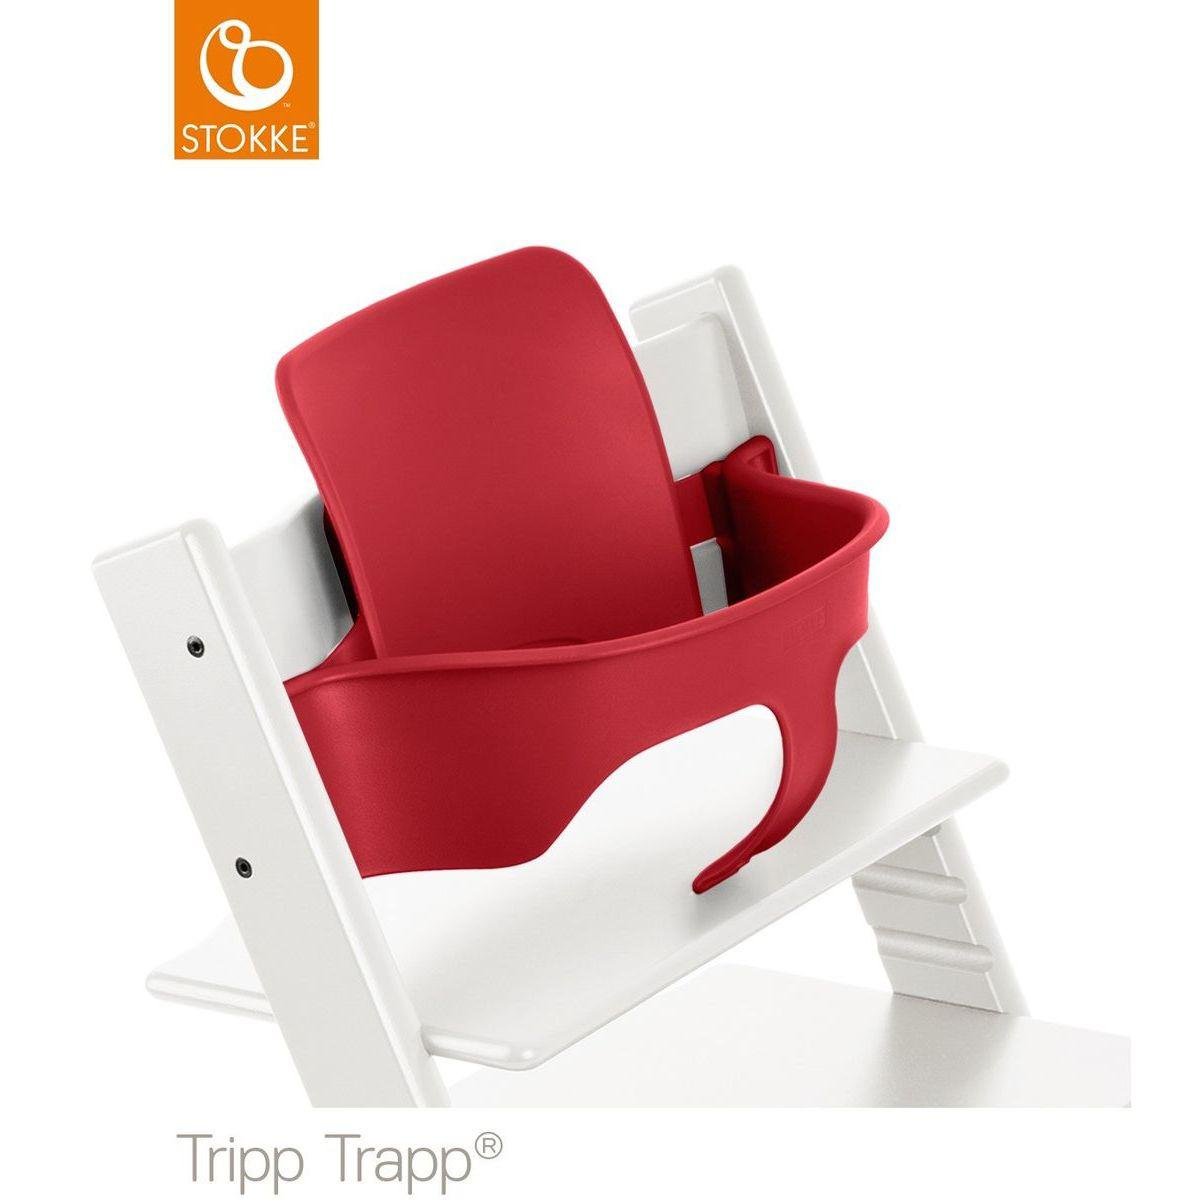 Baby set chaise haute TRIPP TRAPP Stokke rouge